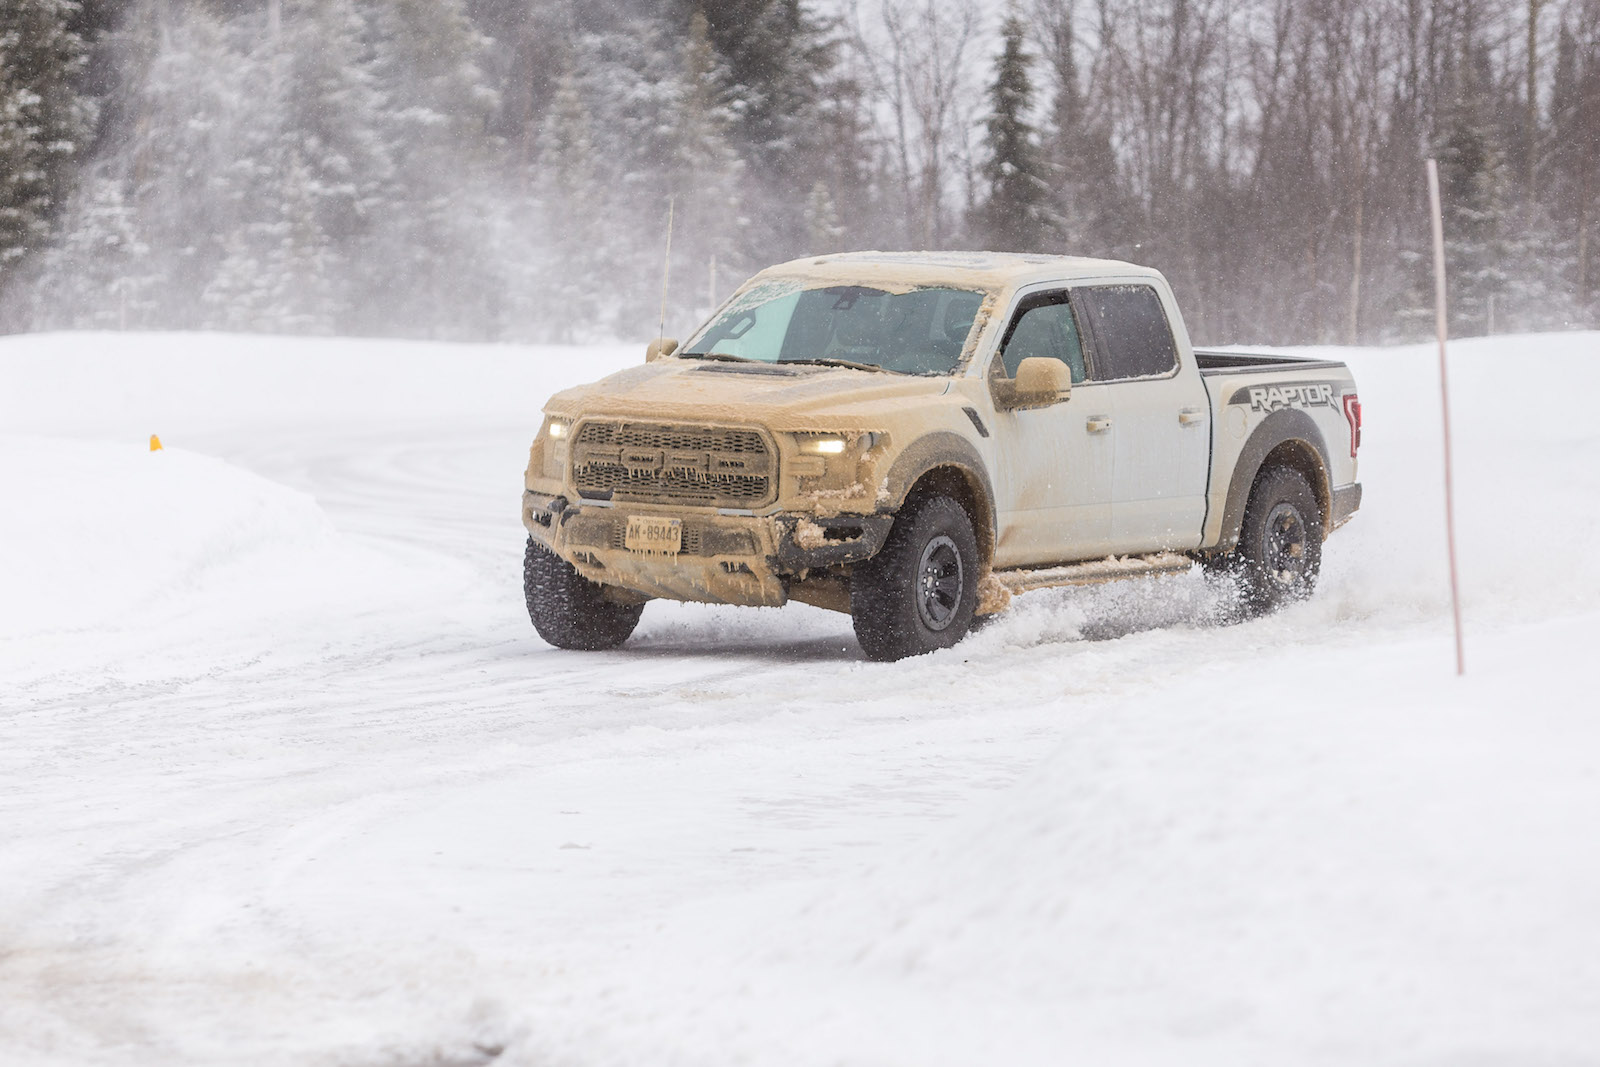 Image result for severe winter weather truck bed